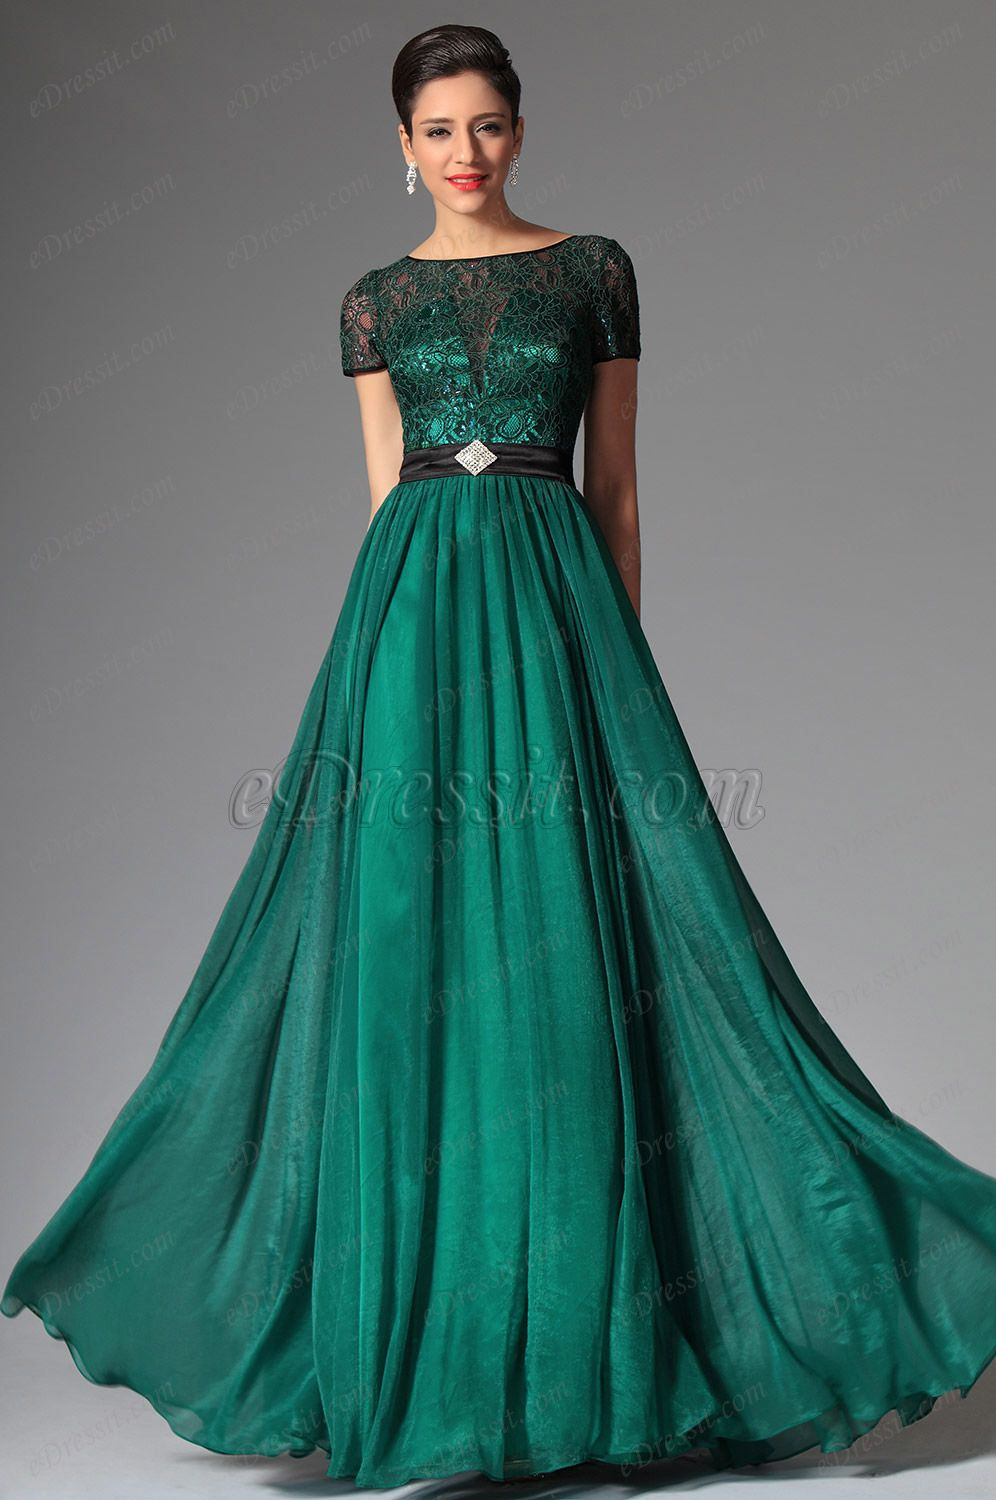 eDressit 2014 New Dark Green Short Sleeves Evening Dress Prom ...